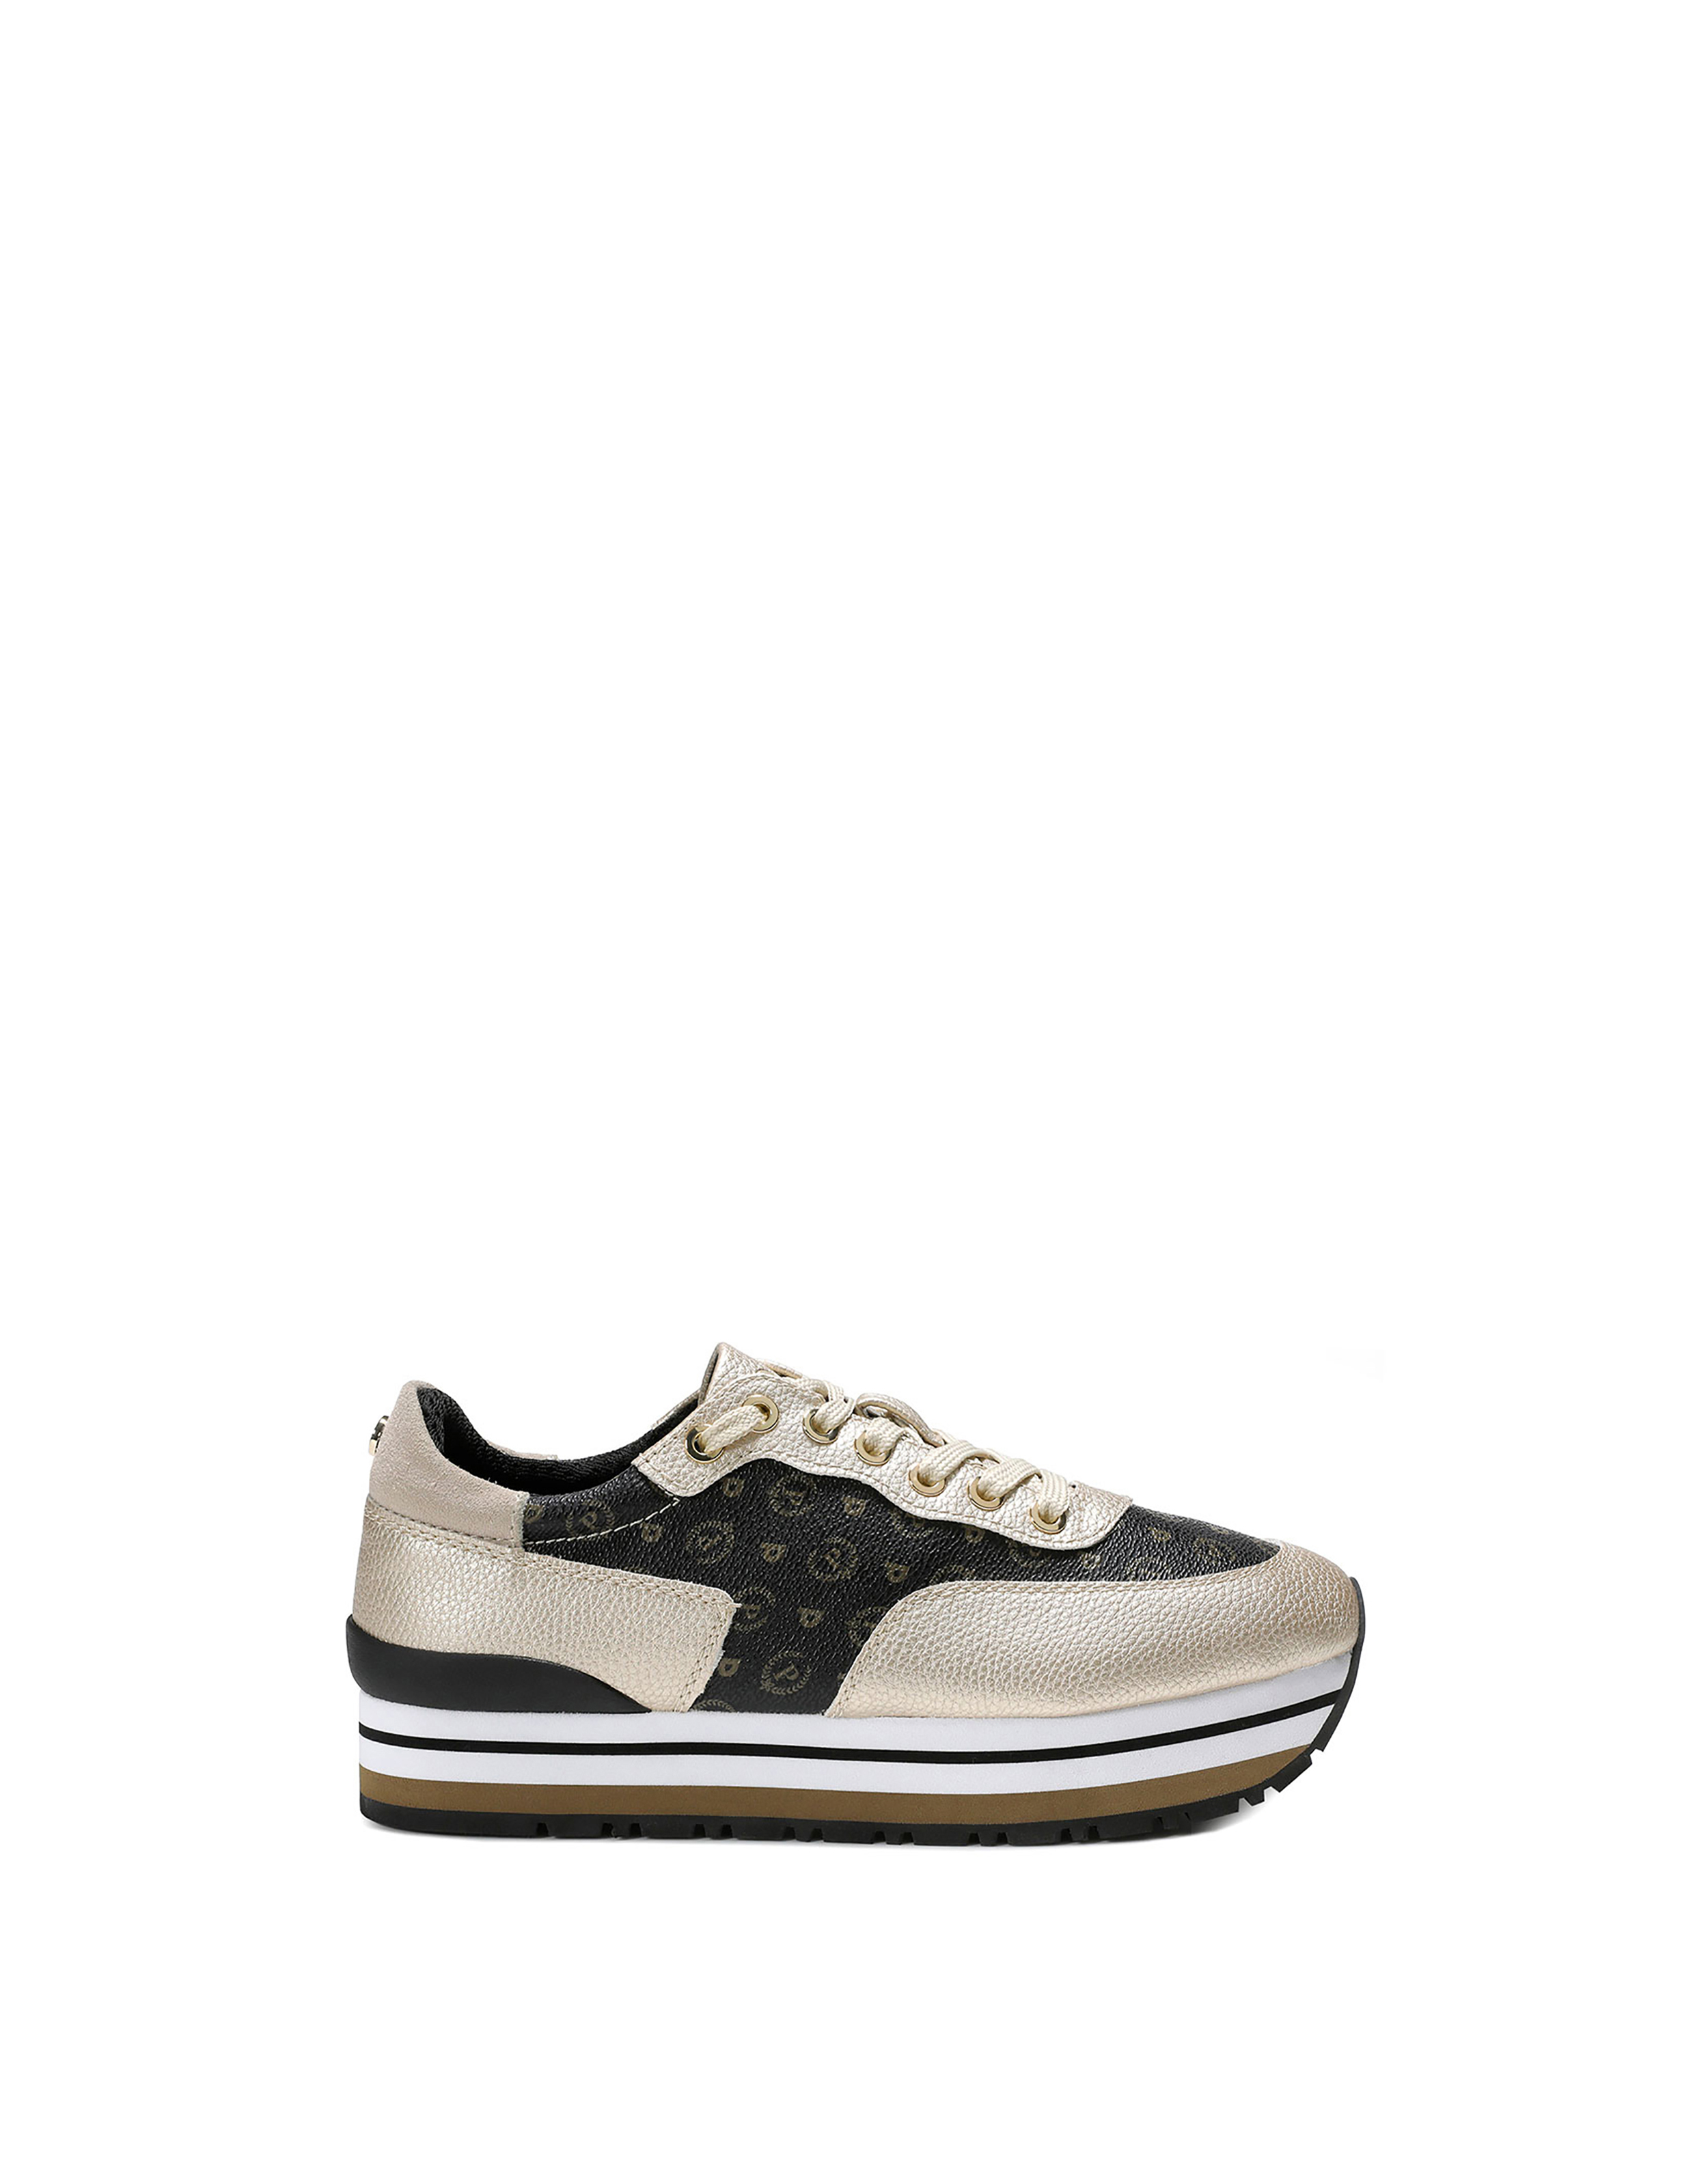 Sneakers Blackplatinumivory Woman Pollini Online Boutique